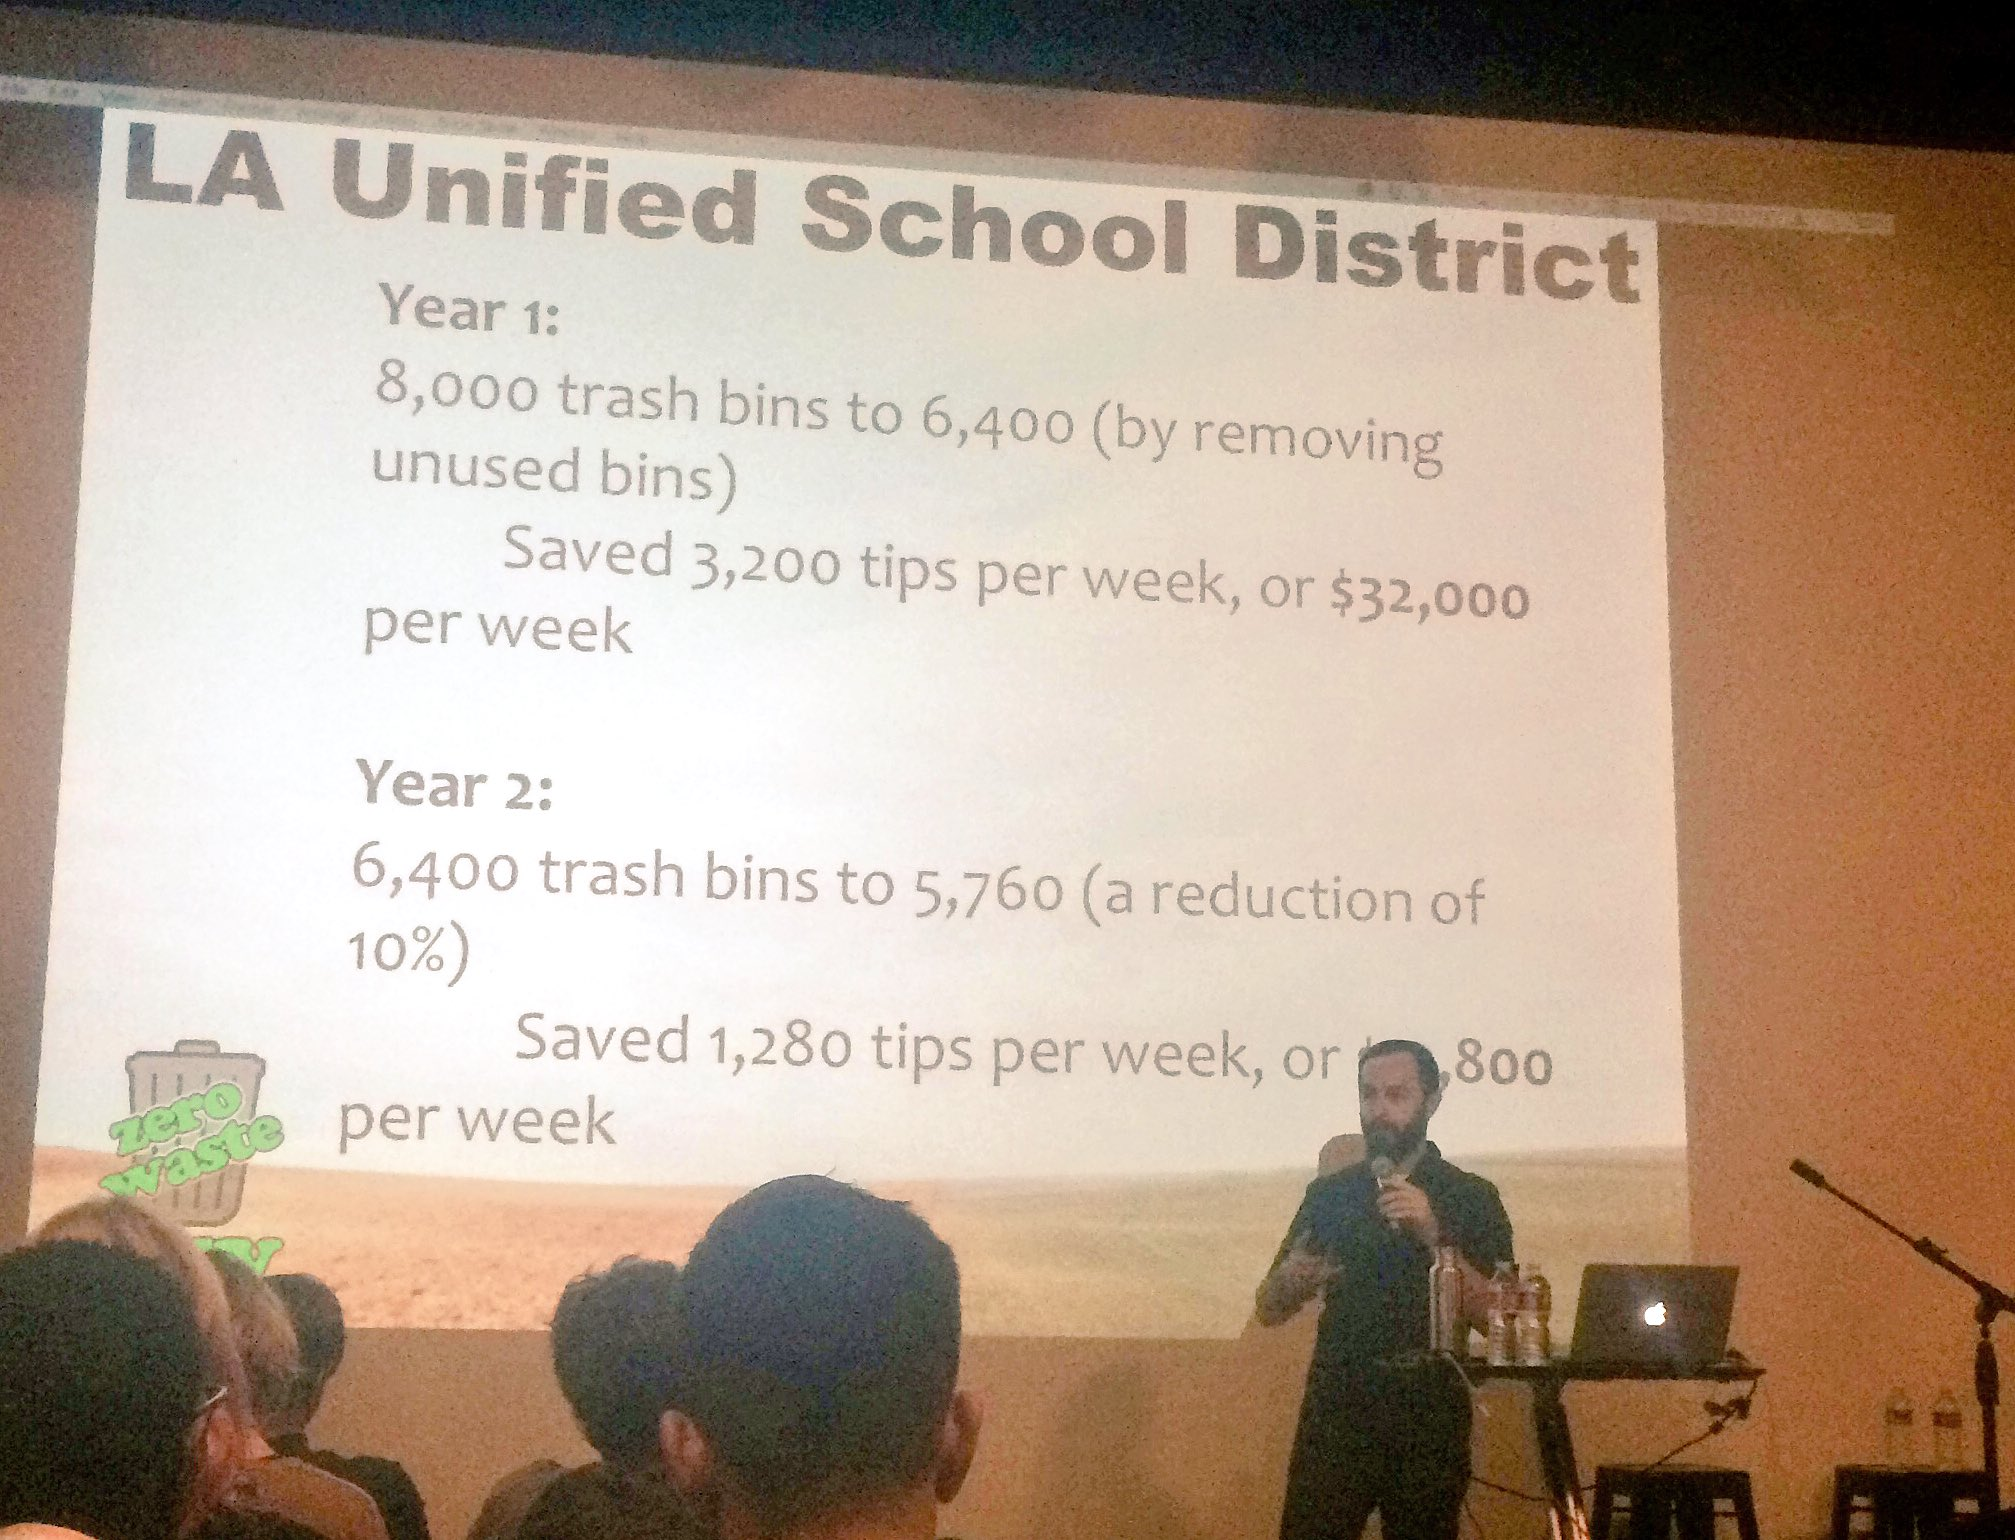 Avoiding waste saves money! @zerowasteguy1 saved @LASchools lots of 💸#wud16la https://t.co/MxIg2PPUYA